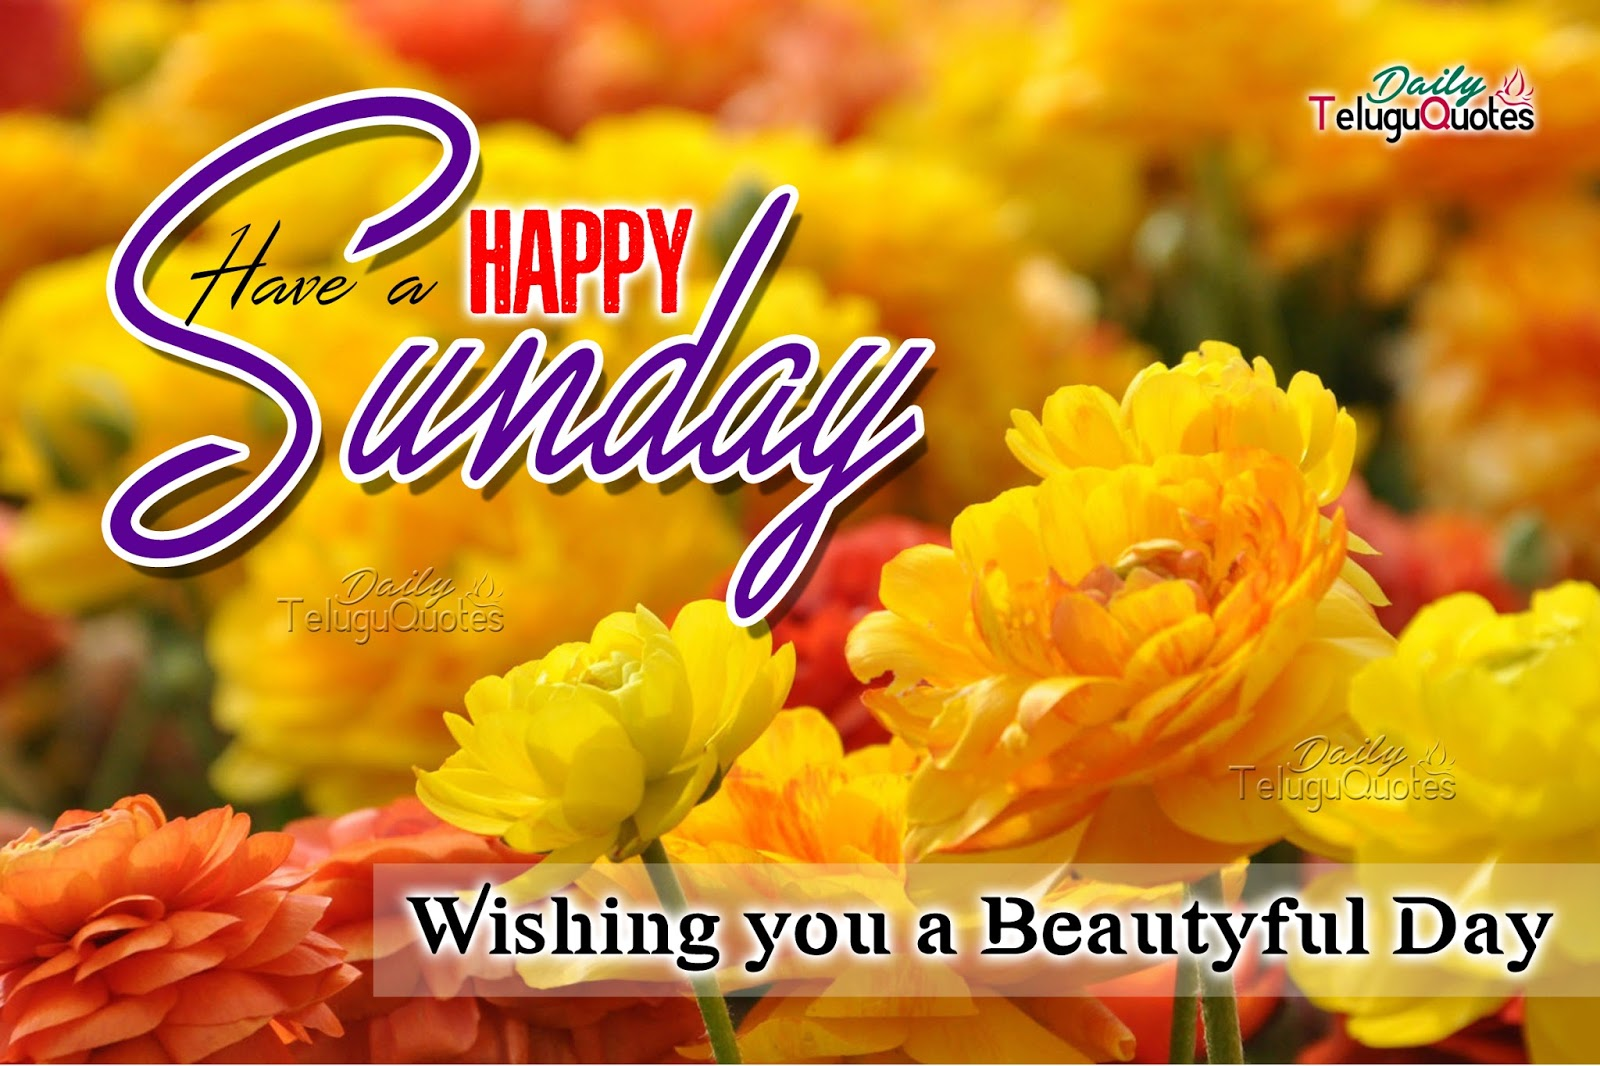 Happy Sunday Wishes Quotes And Sayings With Yellow Flower Stock